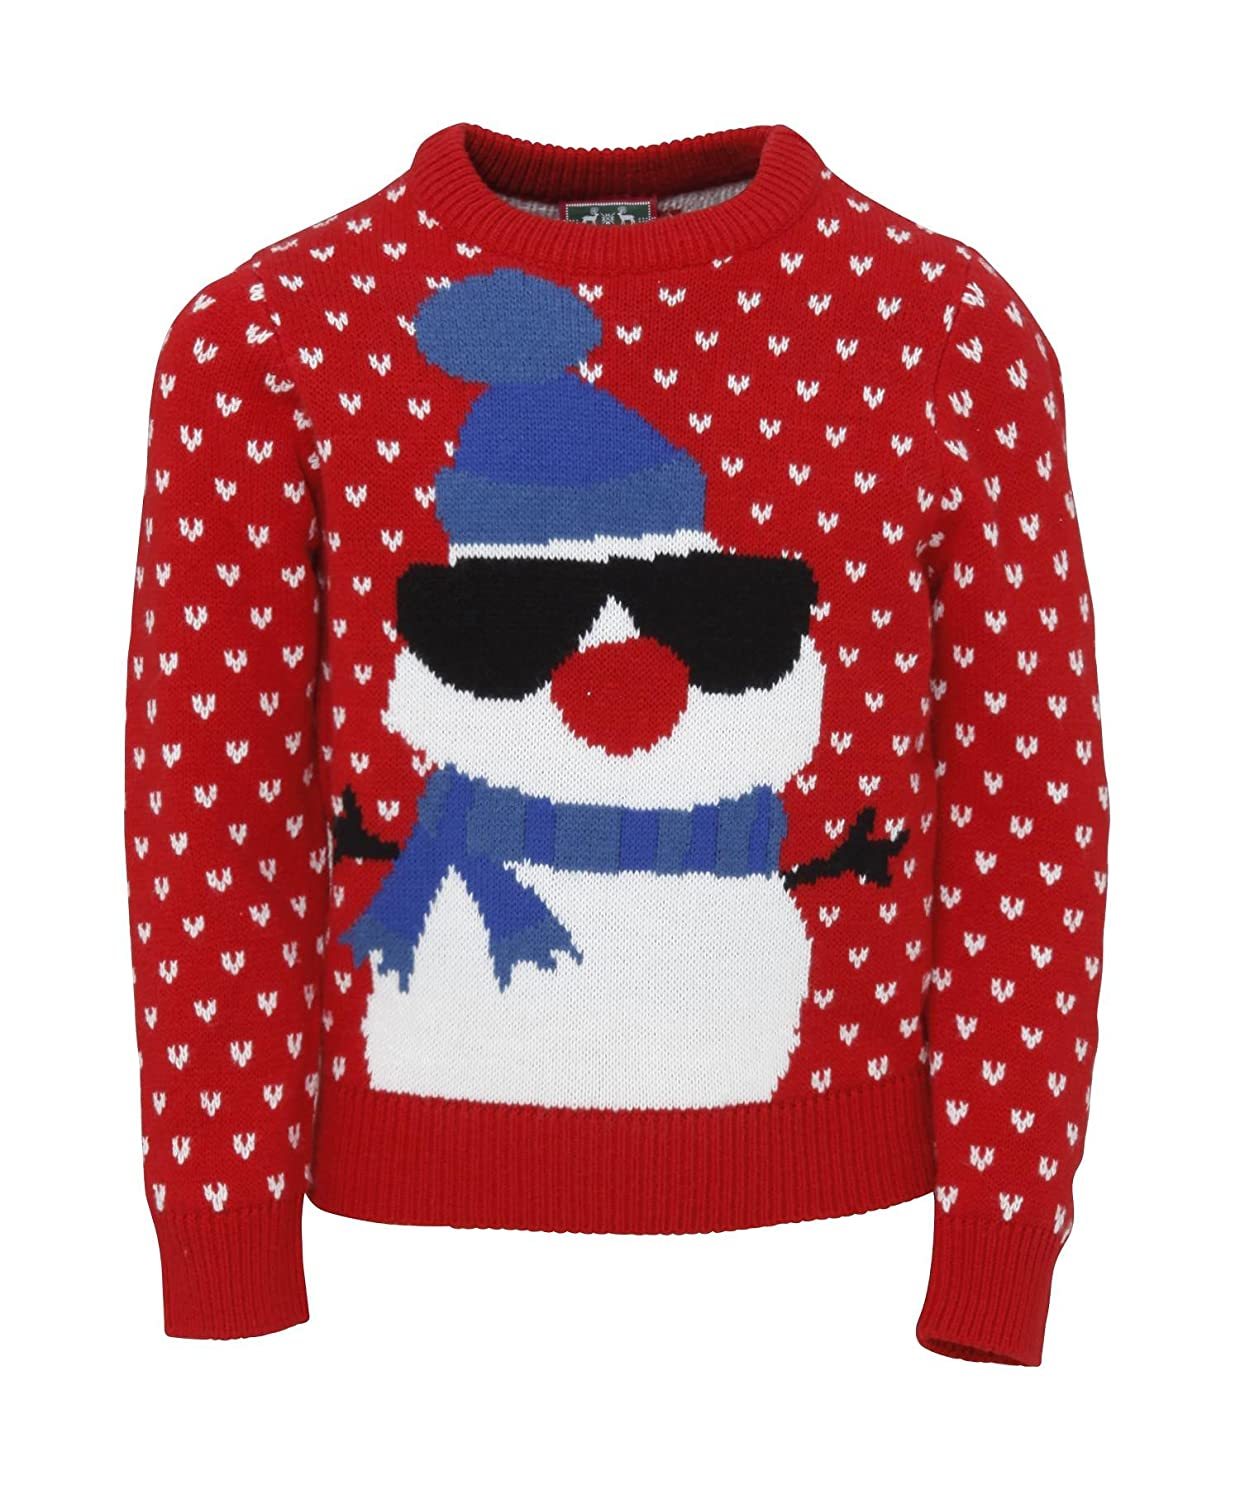 Kids Snowman Christmas Jumper - Age 3-13 Years